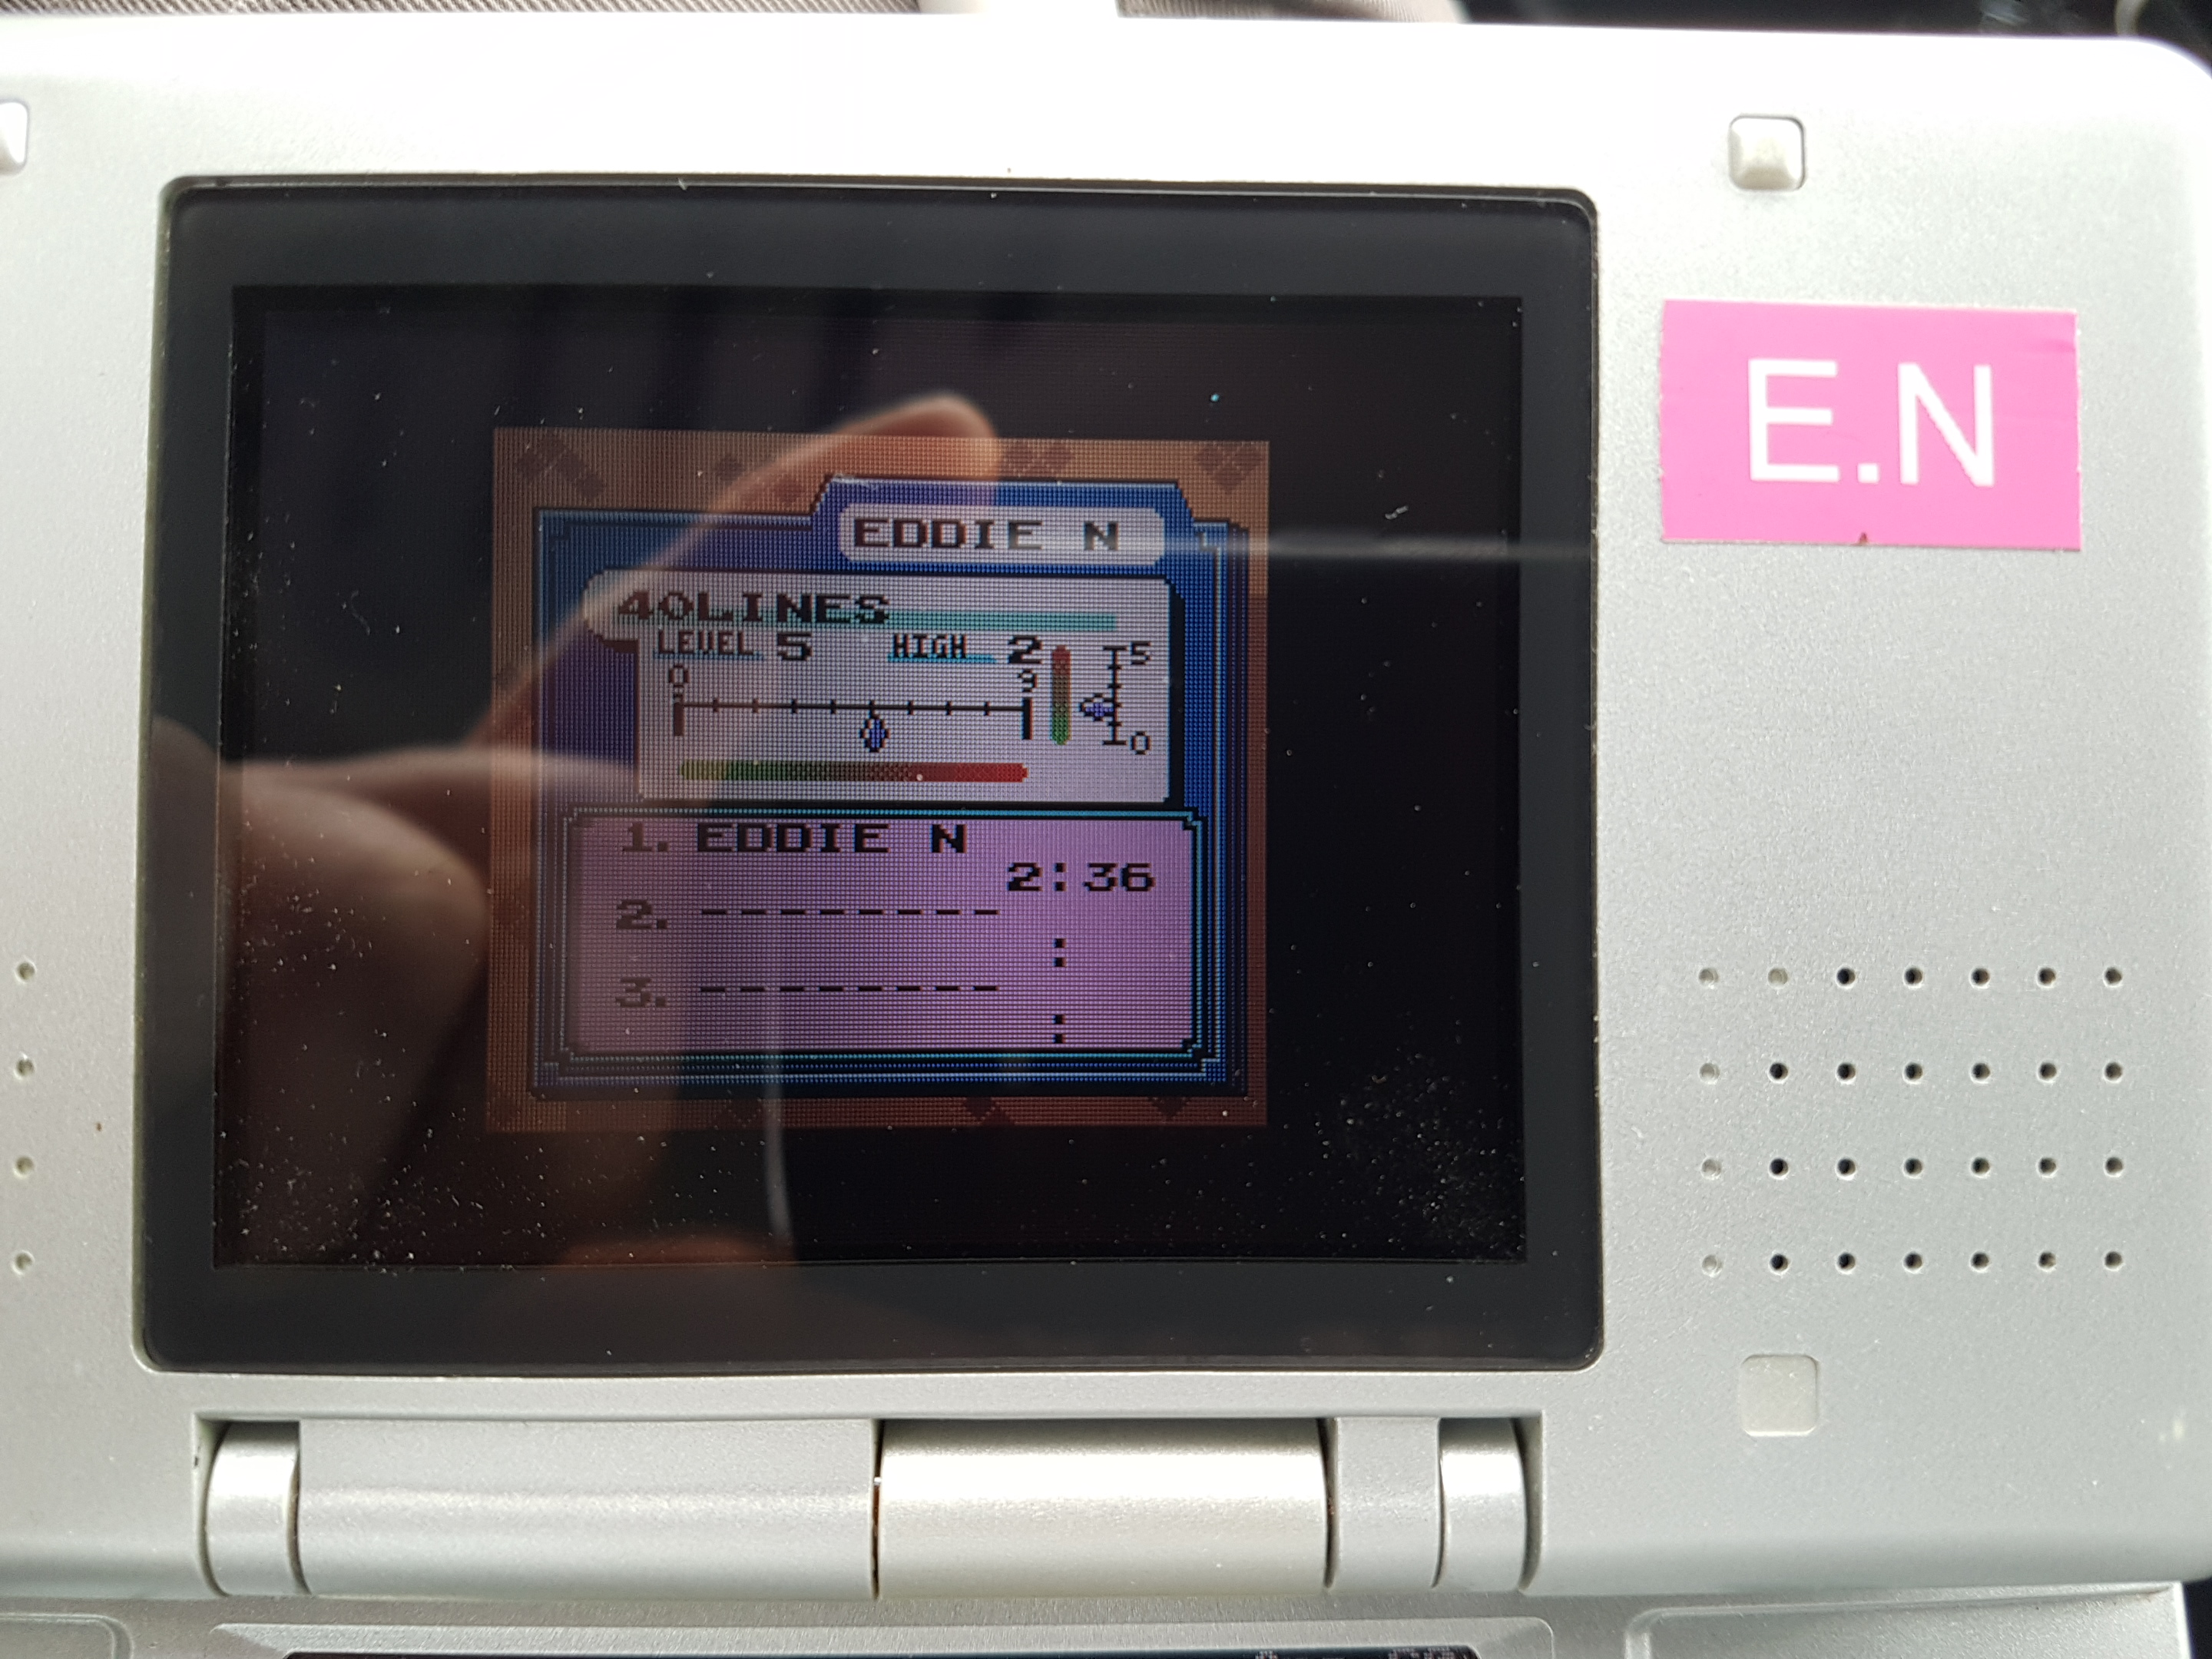 EddieNiceguy: Tetris DX: 40 Lines [Level 5/Height 2] (Game Boy Color Emulated) 0:02:36 points on 2019-01-25 05:33:21